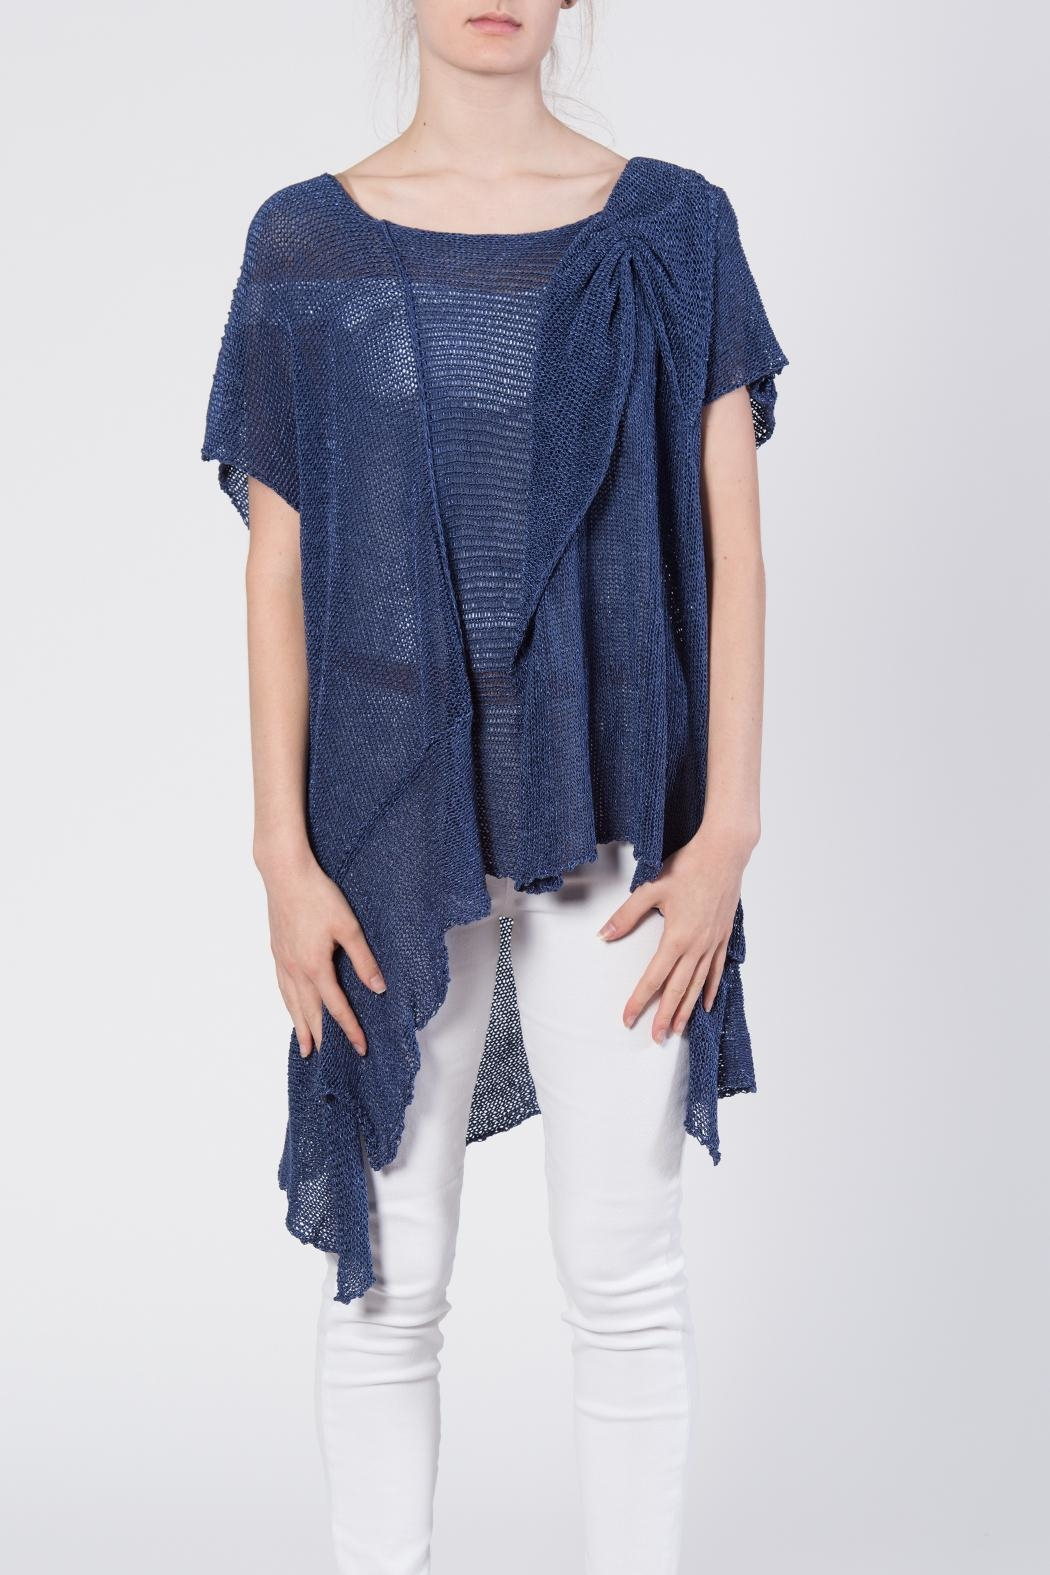 BK Moda Bow Sweater Top - Front Full Image